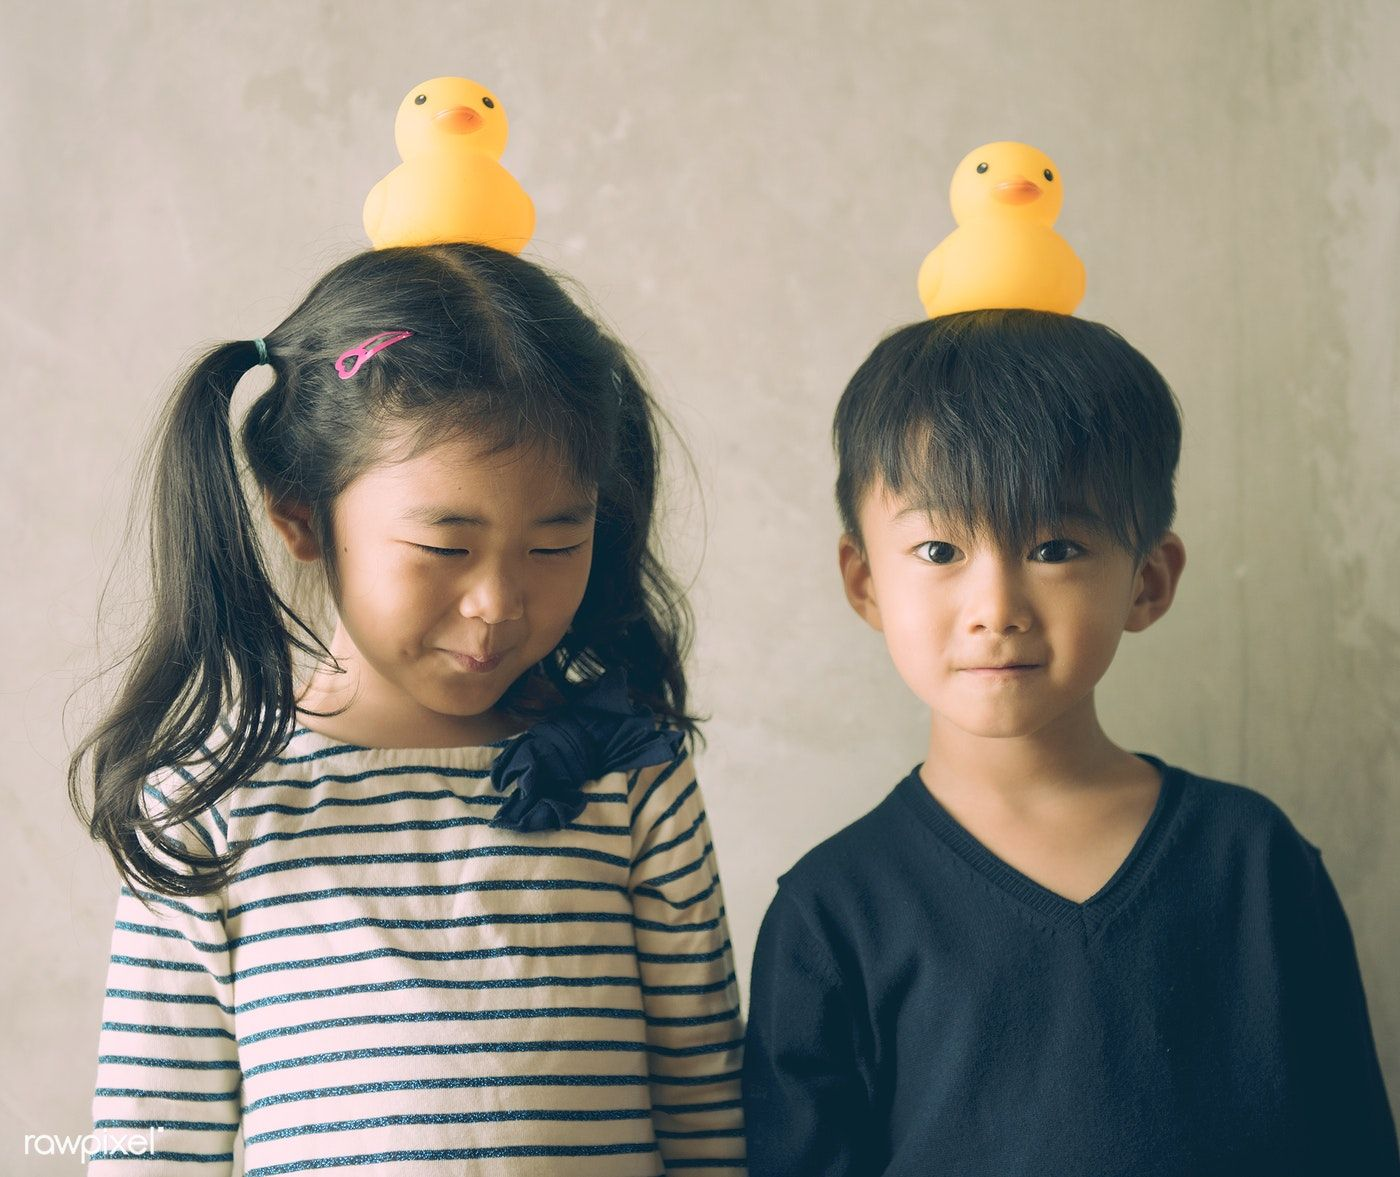 Download premium image of Japanese kids with rubber